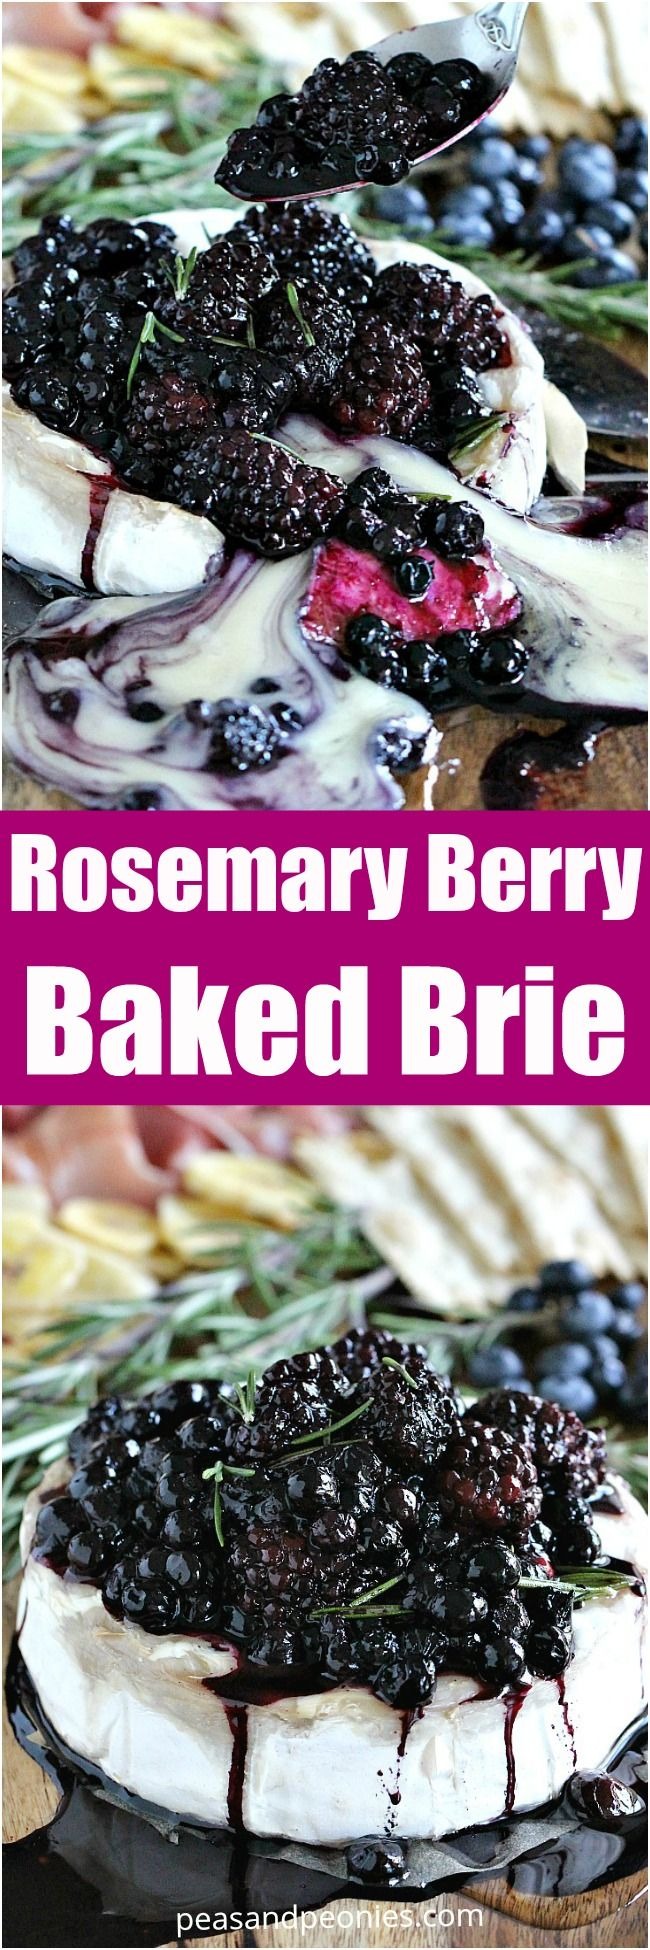 Rosemary Berry Baked Brie is a creamy and flavorful showstopper appetizer. Topped with coconut oil roasted berries and fresh rosemary for maximum flavor.